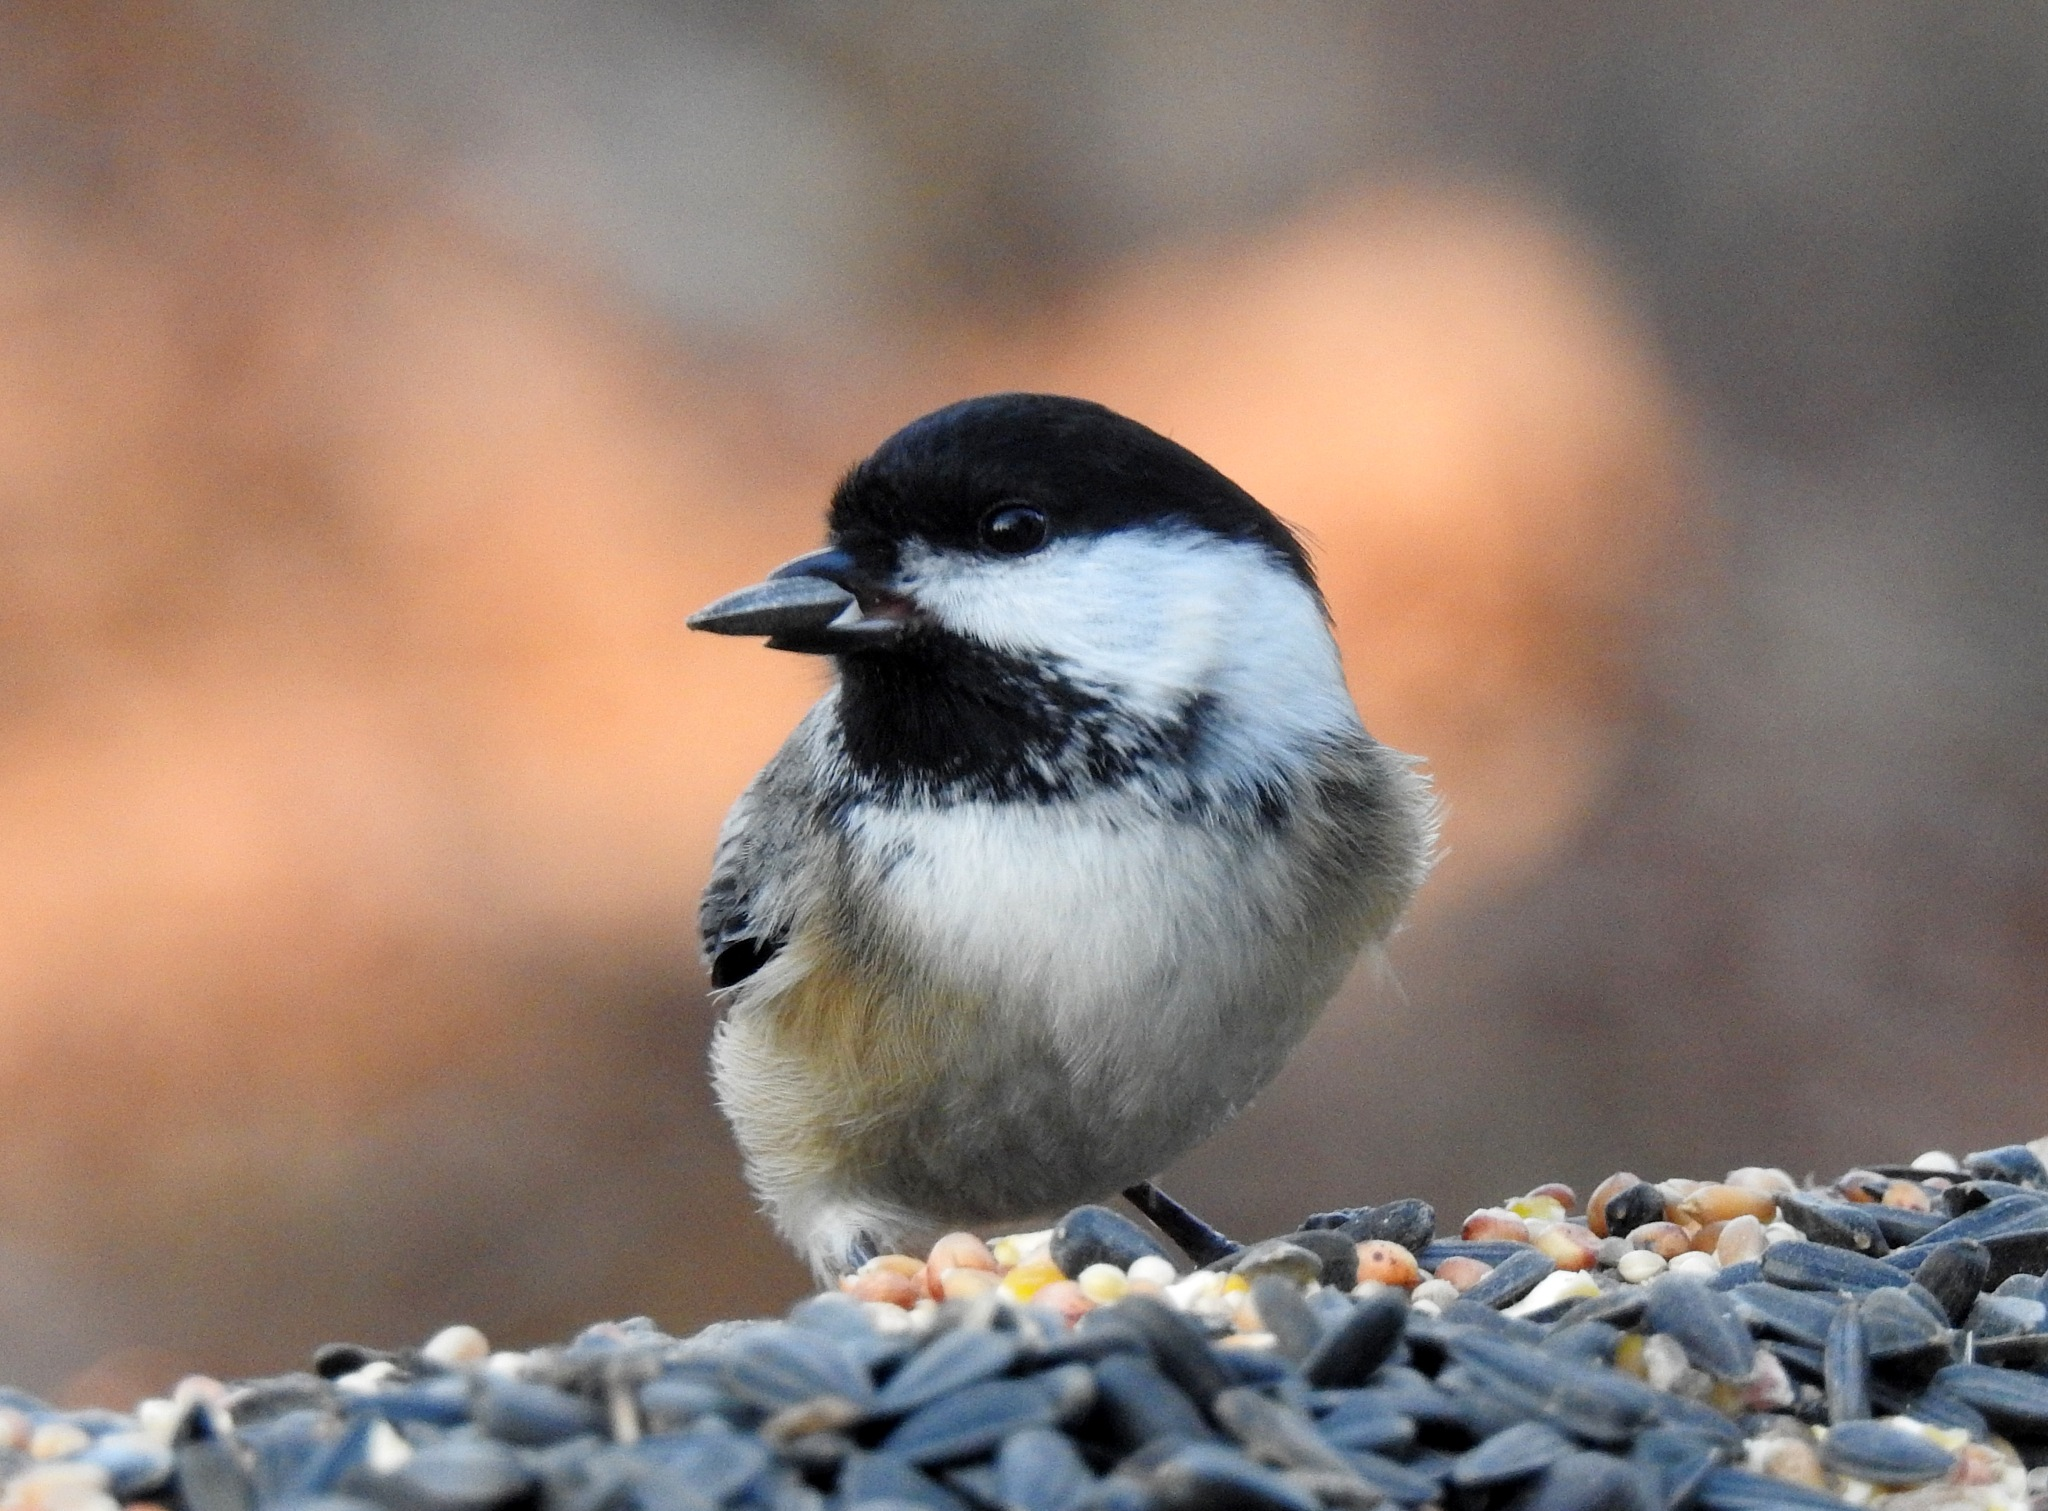 Chickadee by carol.capozzi.18